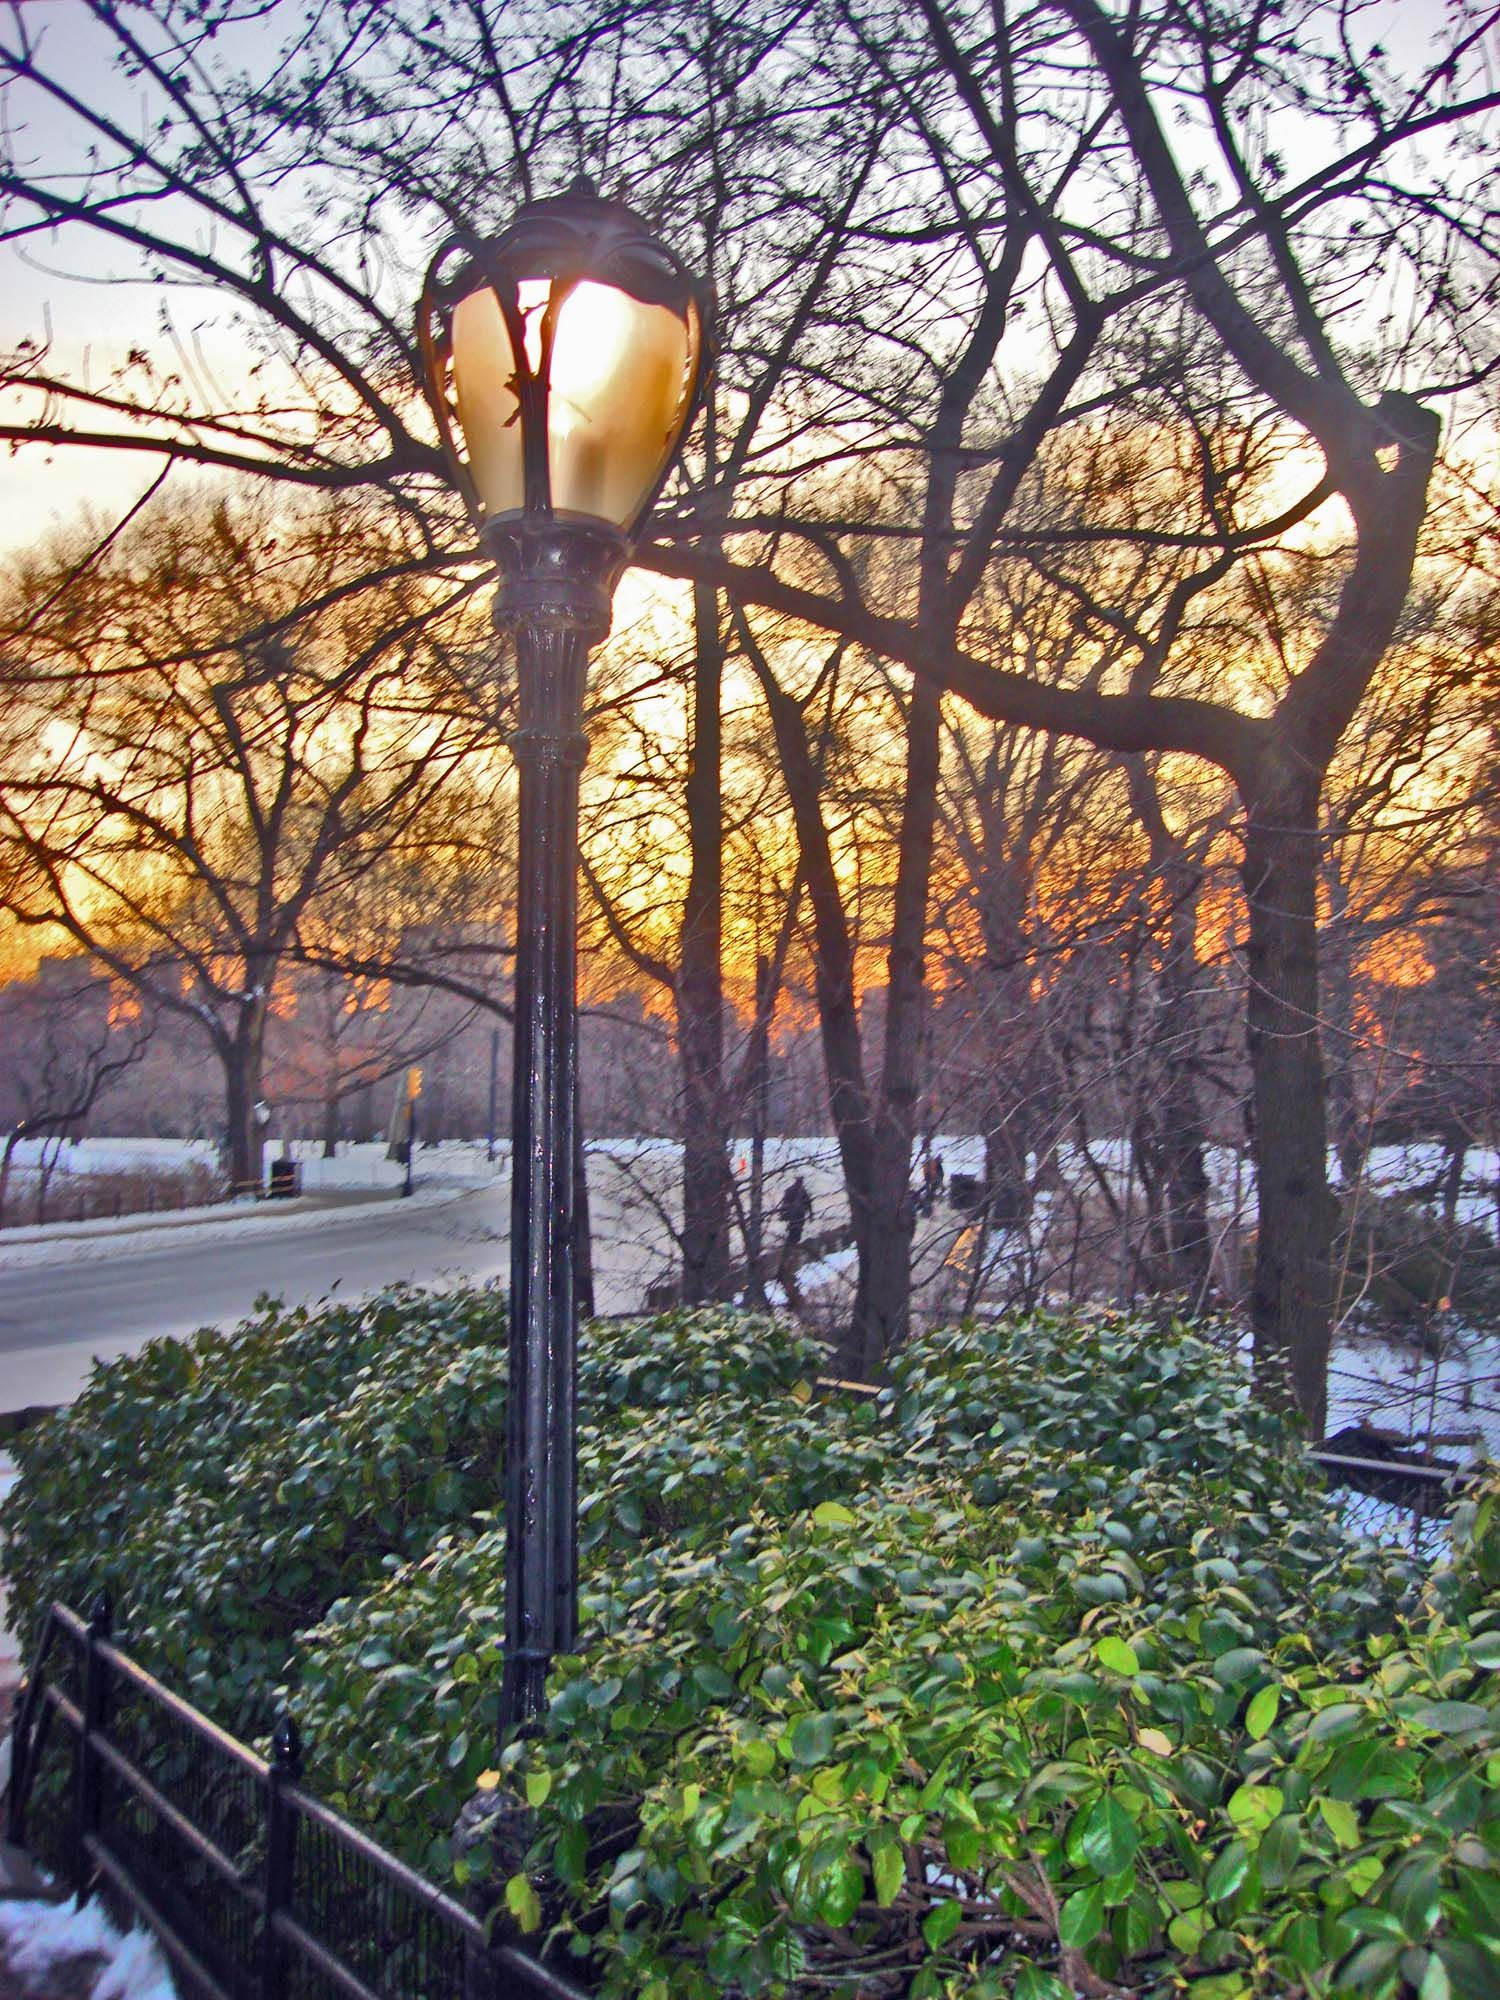 Image result for lamp in central park spring